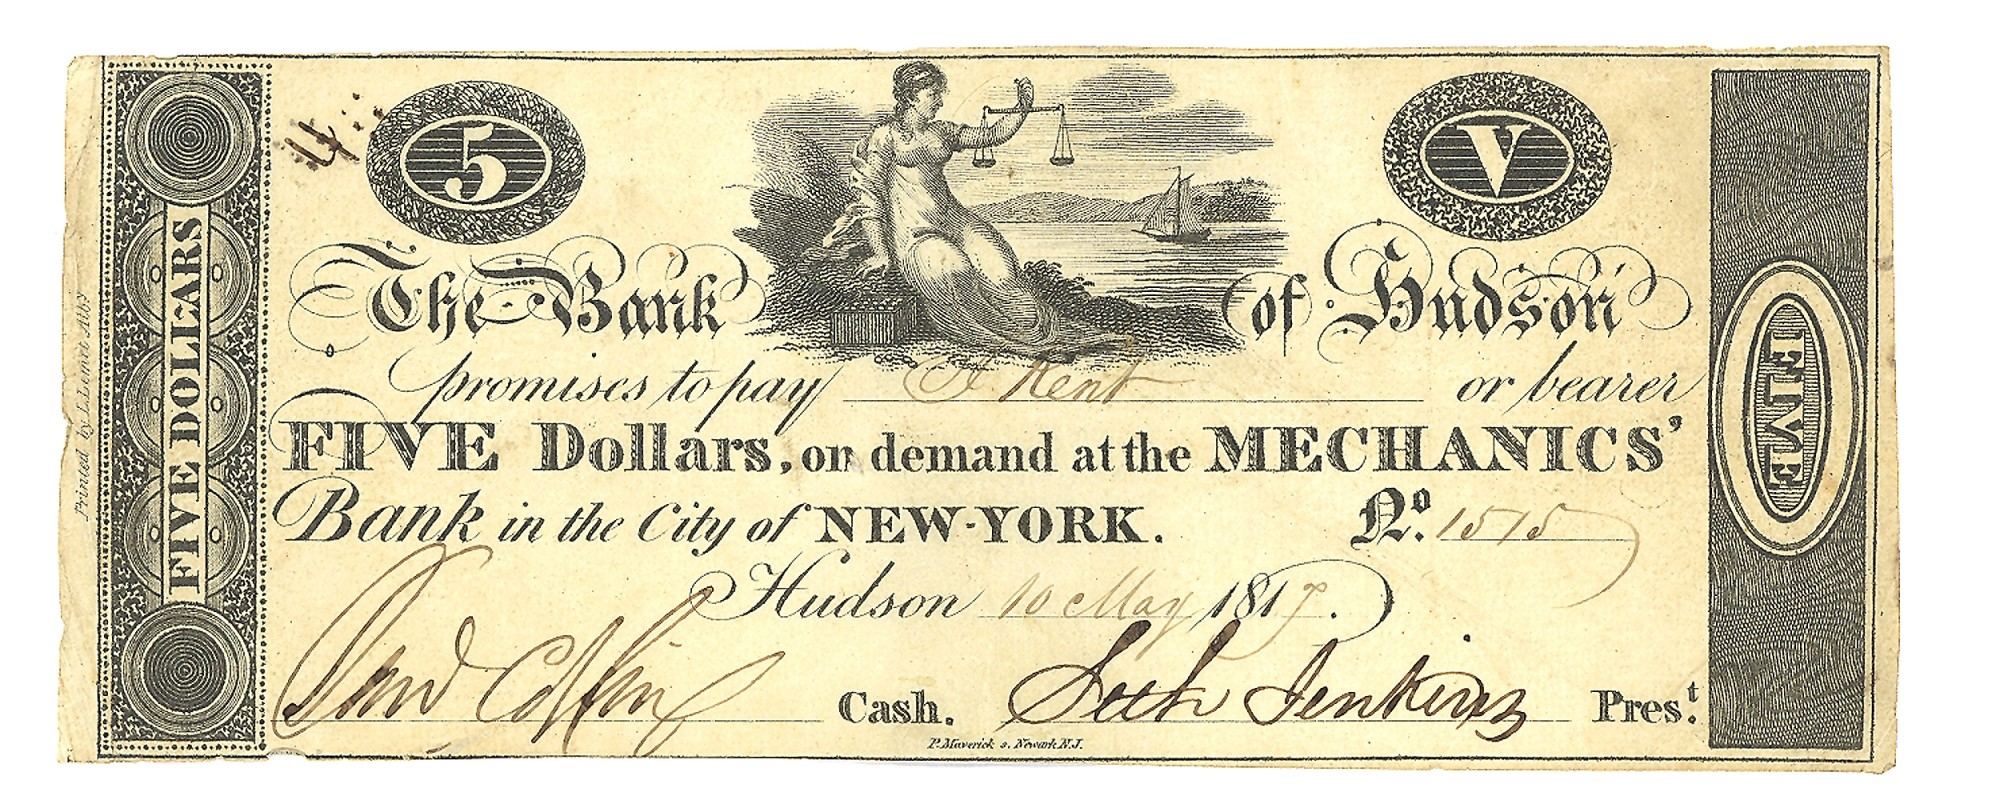 THE BANK OF HUDSON, NEW YORK $5 NOTE